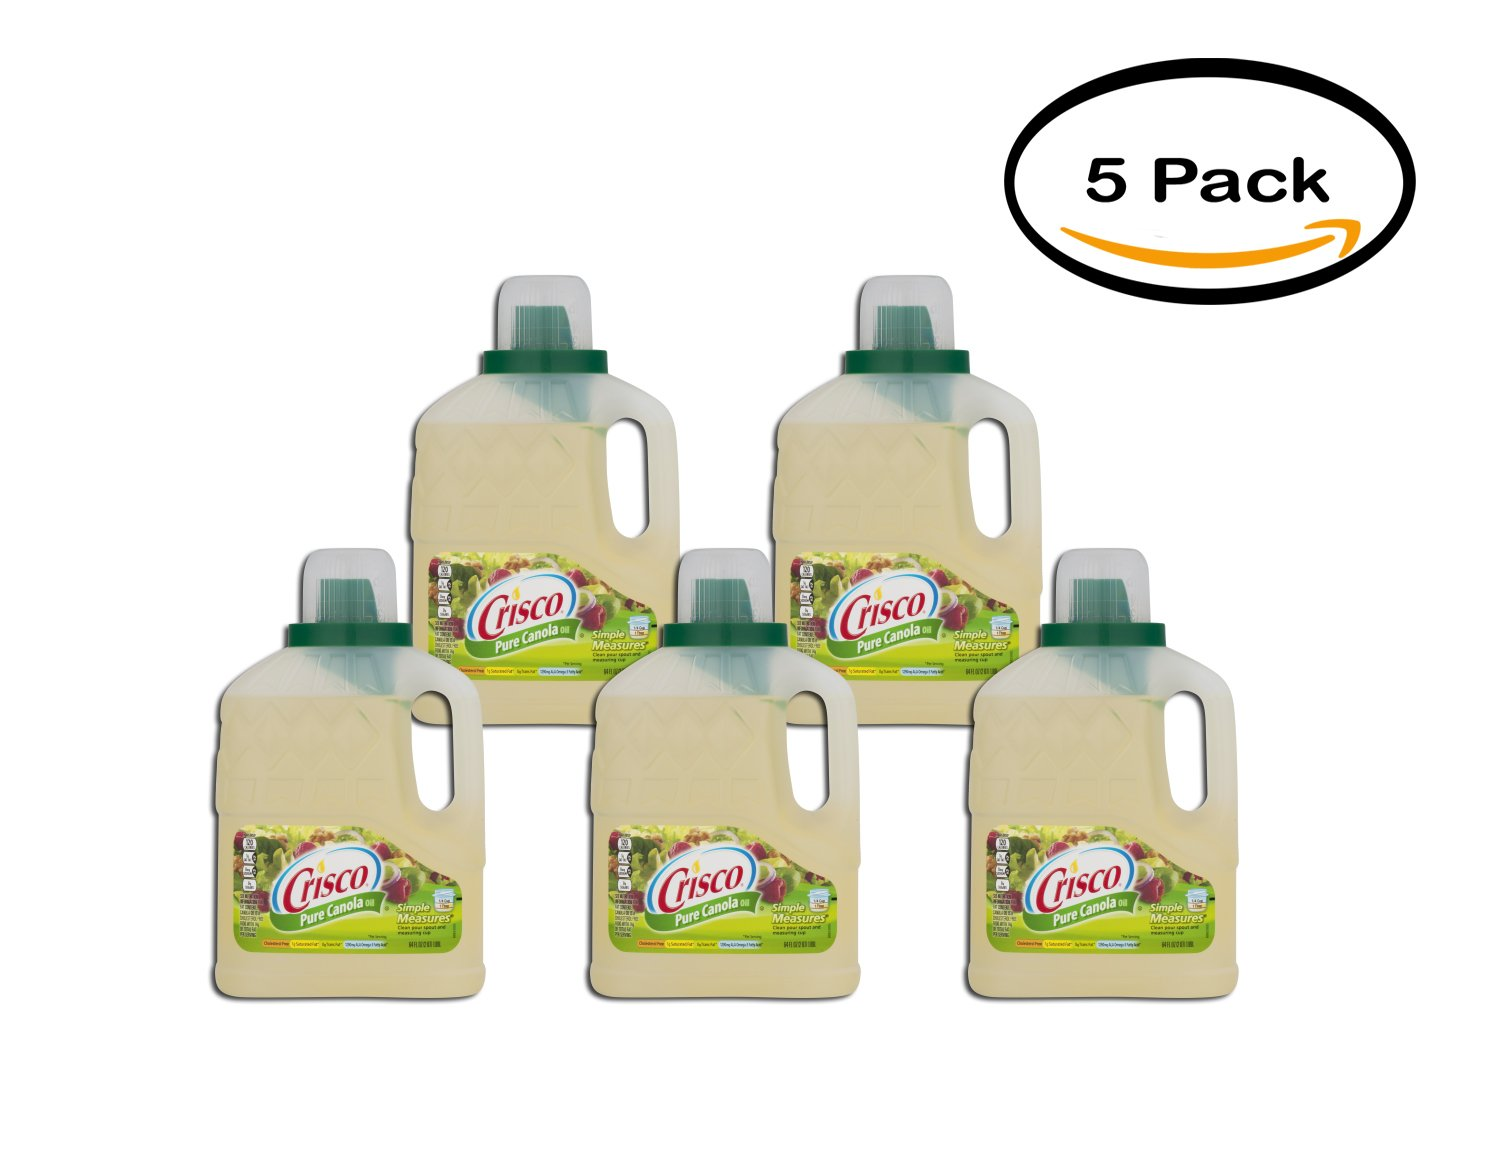 PACK OF 5 - Crisco Canola Pure All Natural Oil, 64 fl oz